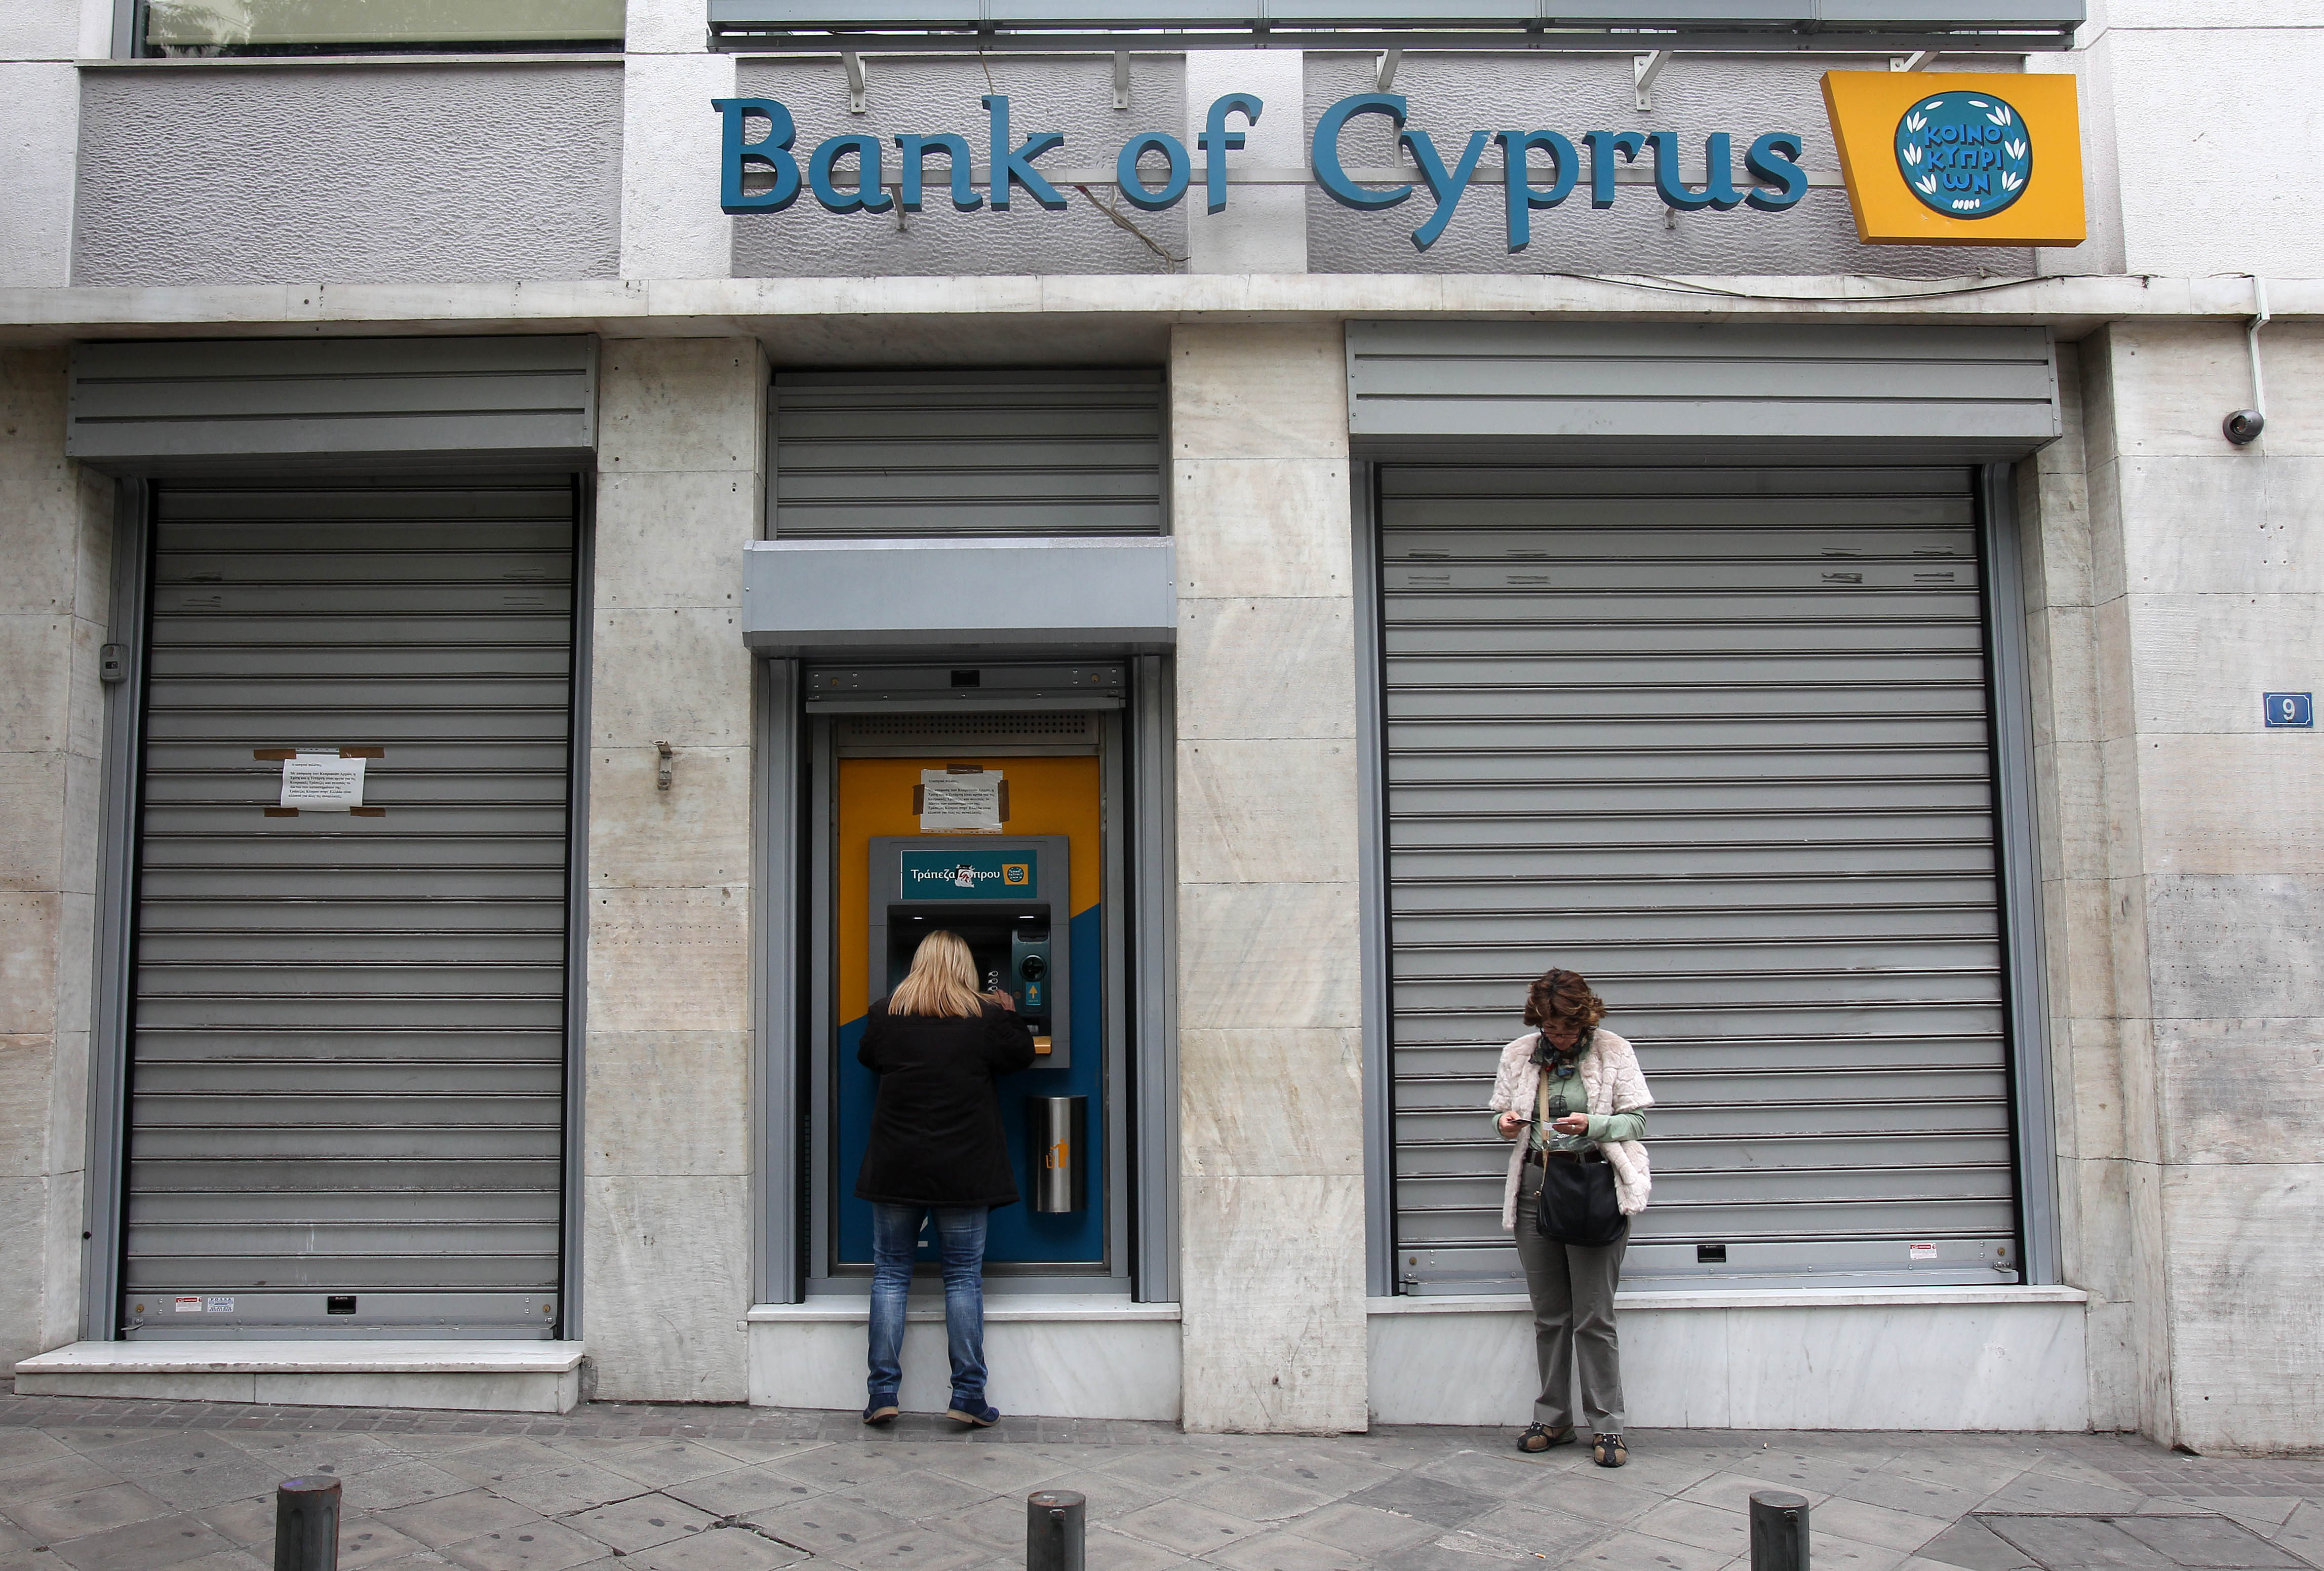 Customers of Bank of Cyprus use the ATM. (AP Photo/Thanassis Stavrakis)